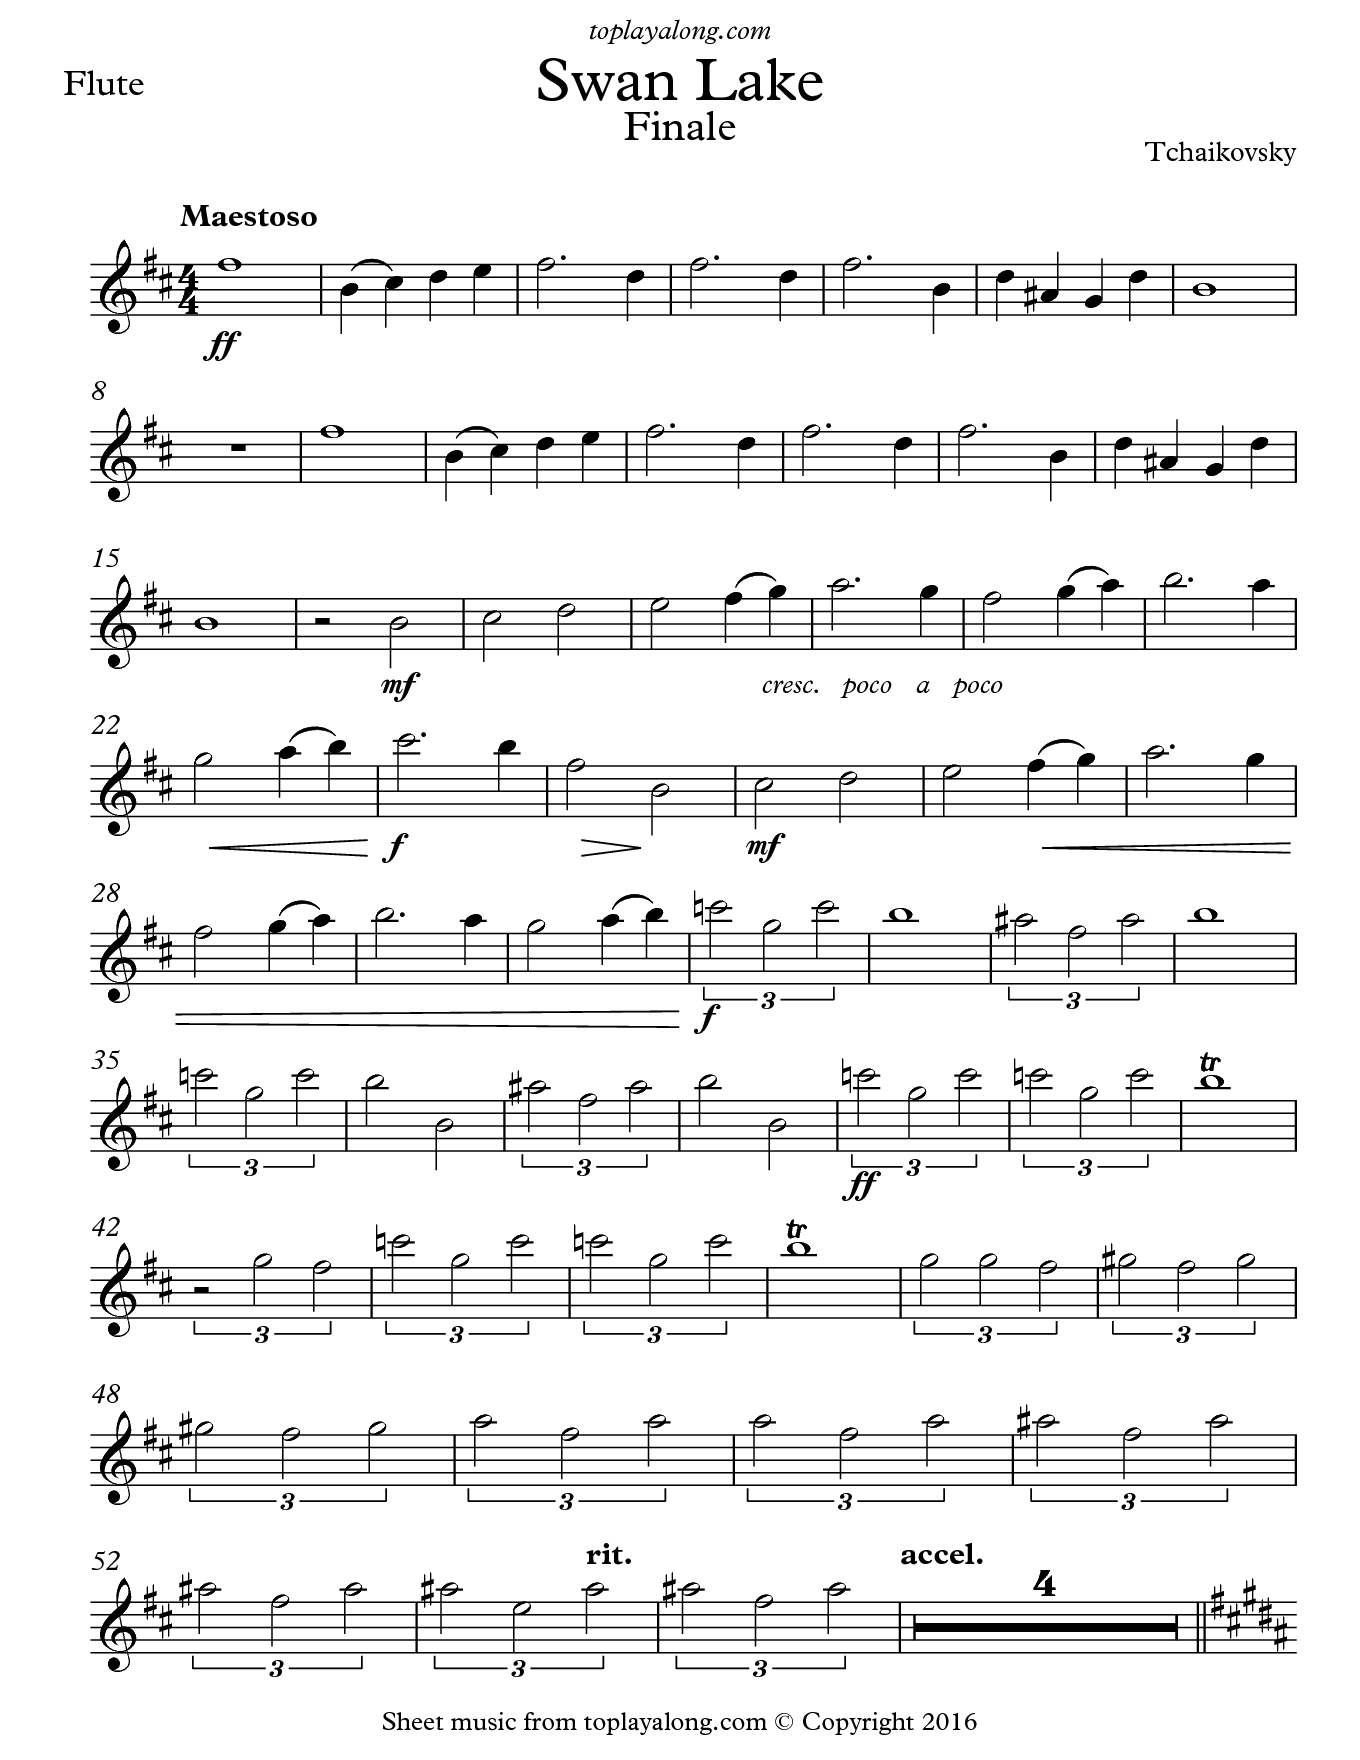 Free Flute Sheet Music For Swan Lake Finaletchaikovsky With - Free Printable Flute Music